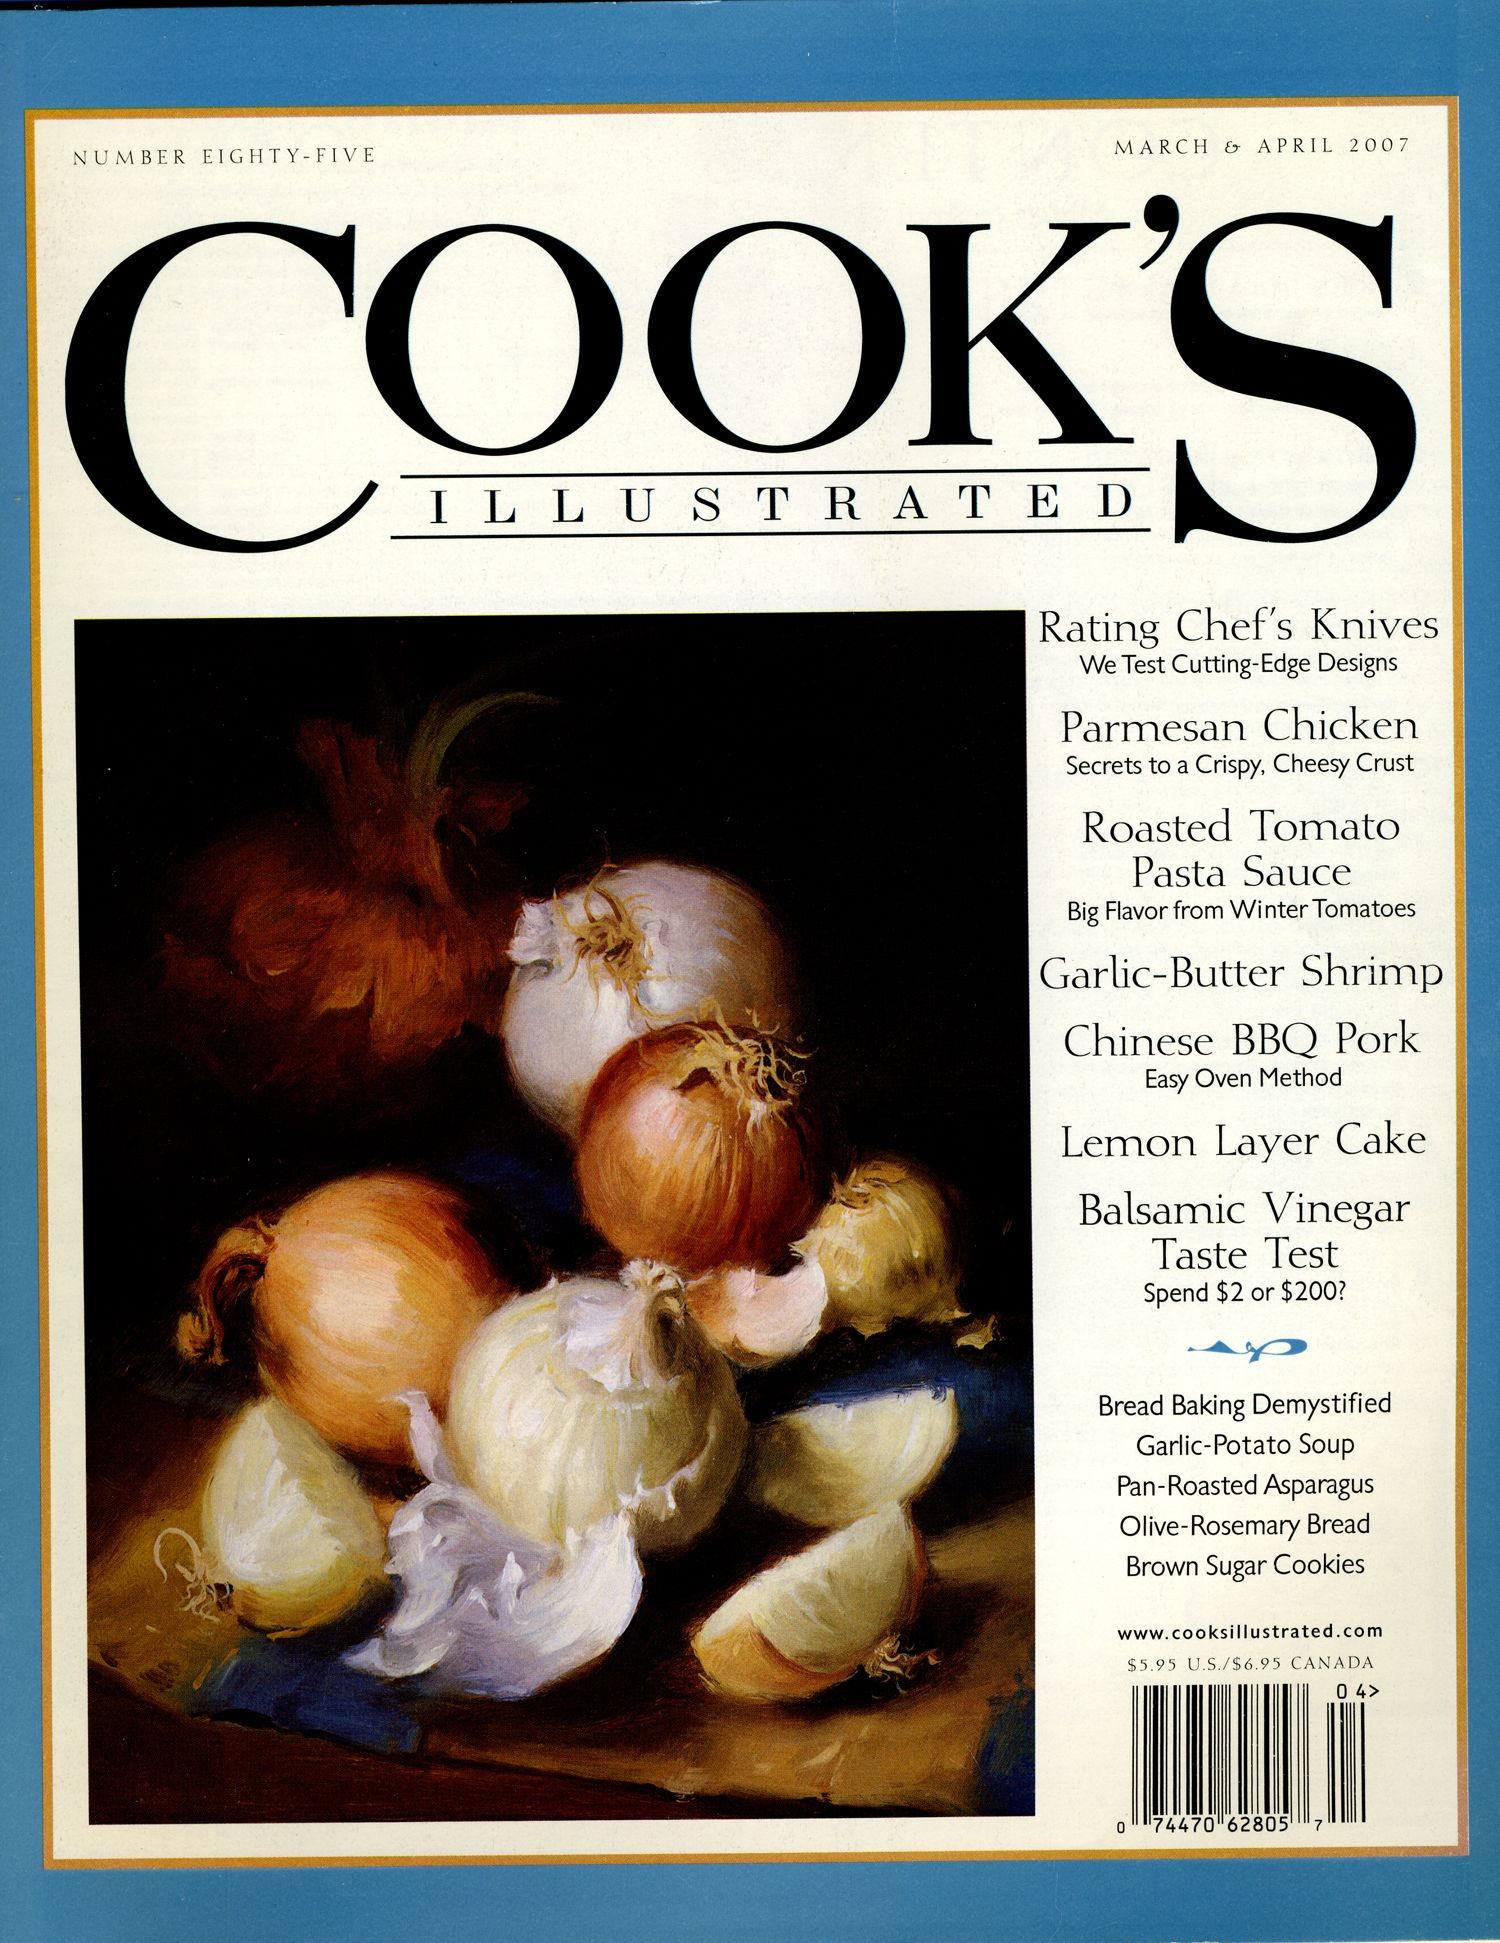 Cooks illustrated cover 2007 holiday cardrecipe book cooks illustrated cover 2007 recipe booksfood forumfinder Choice Image